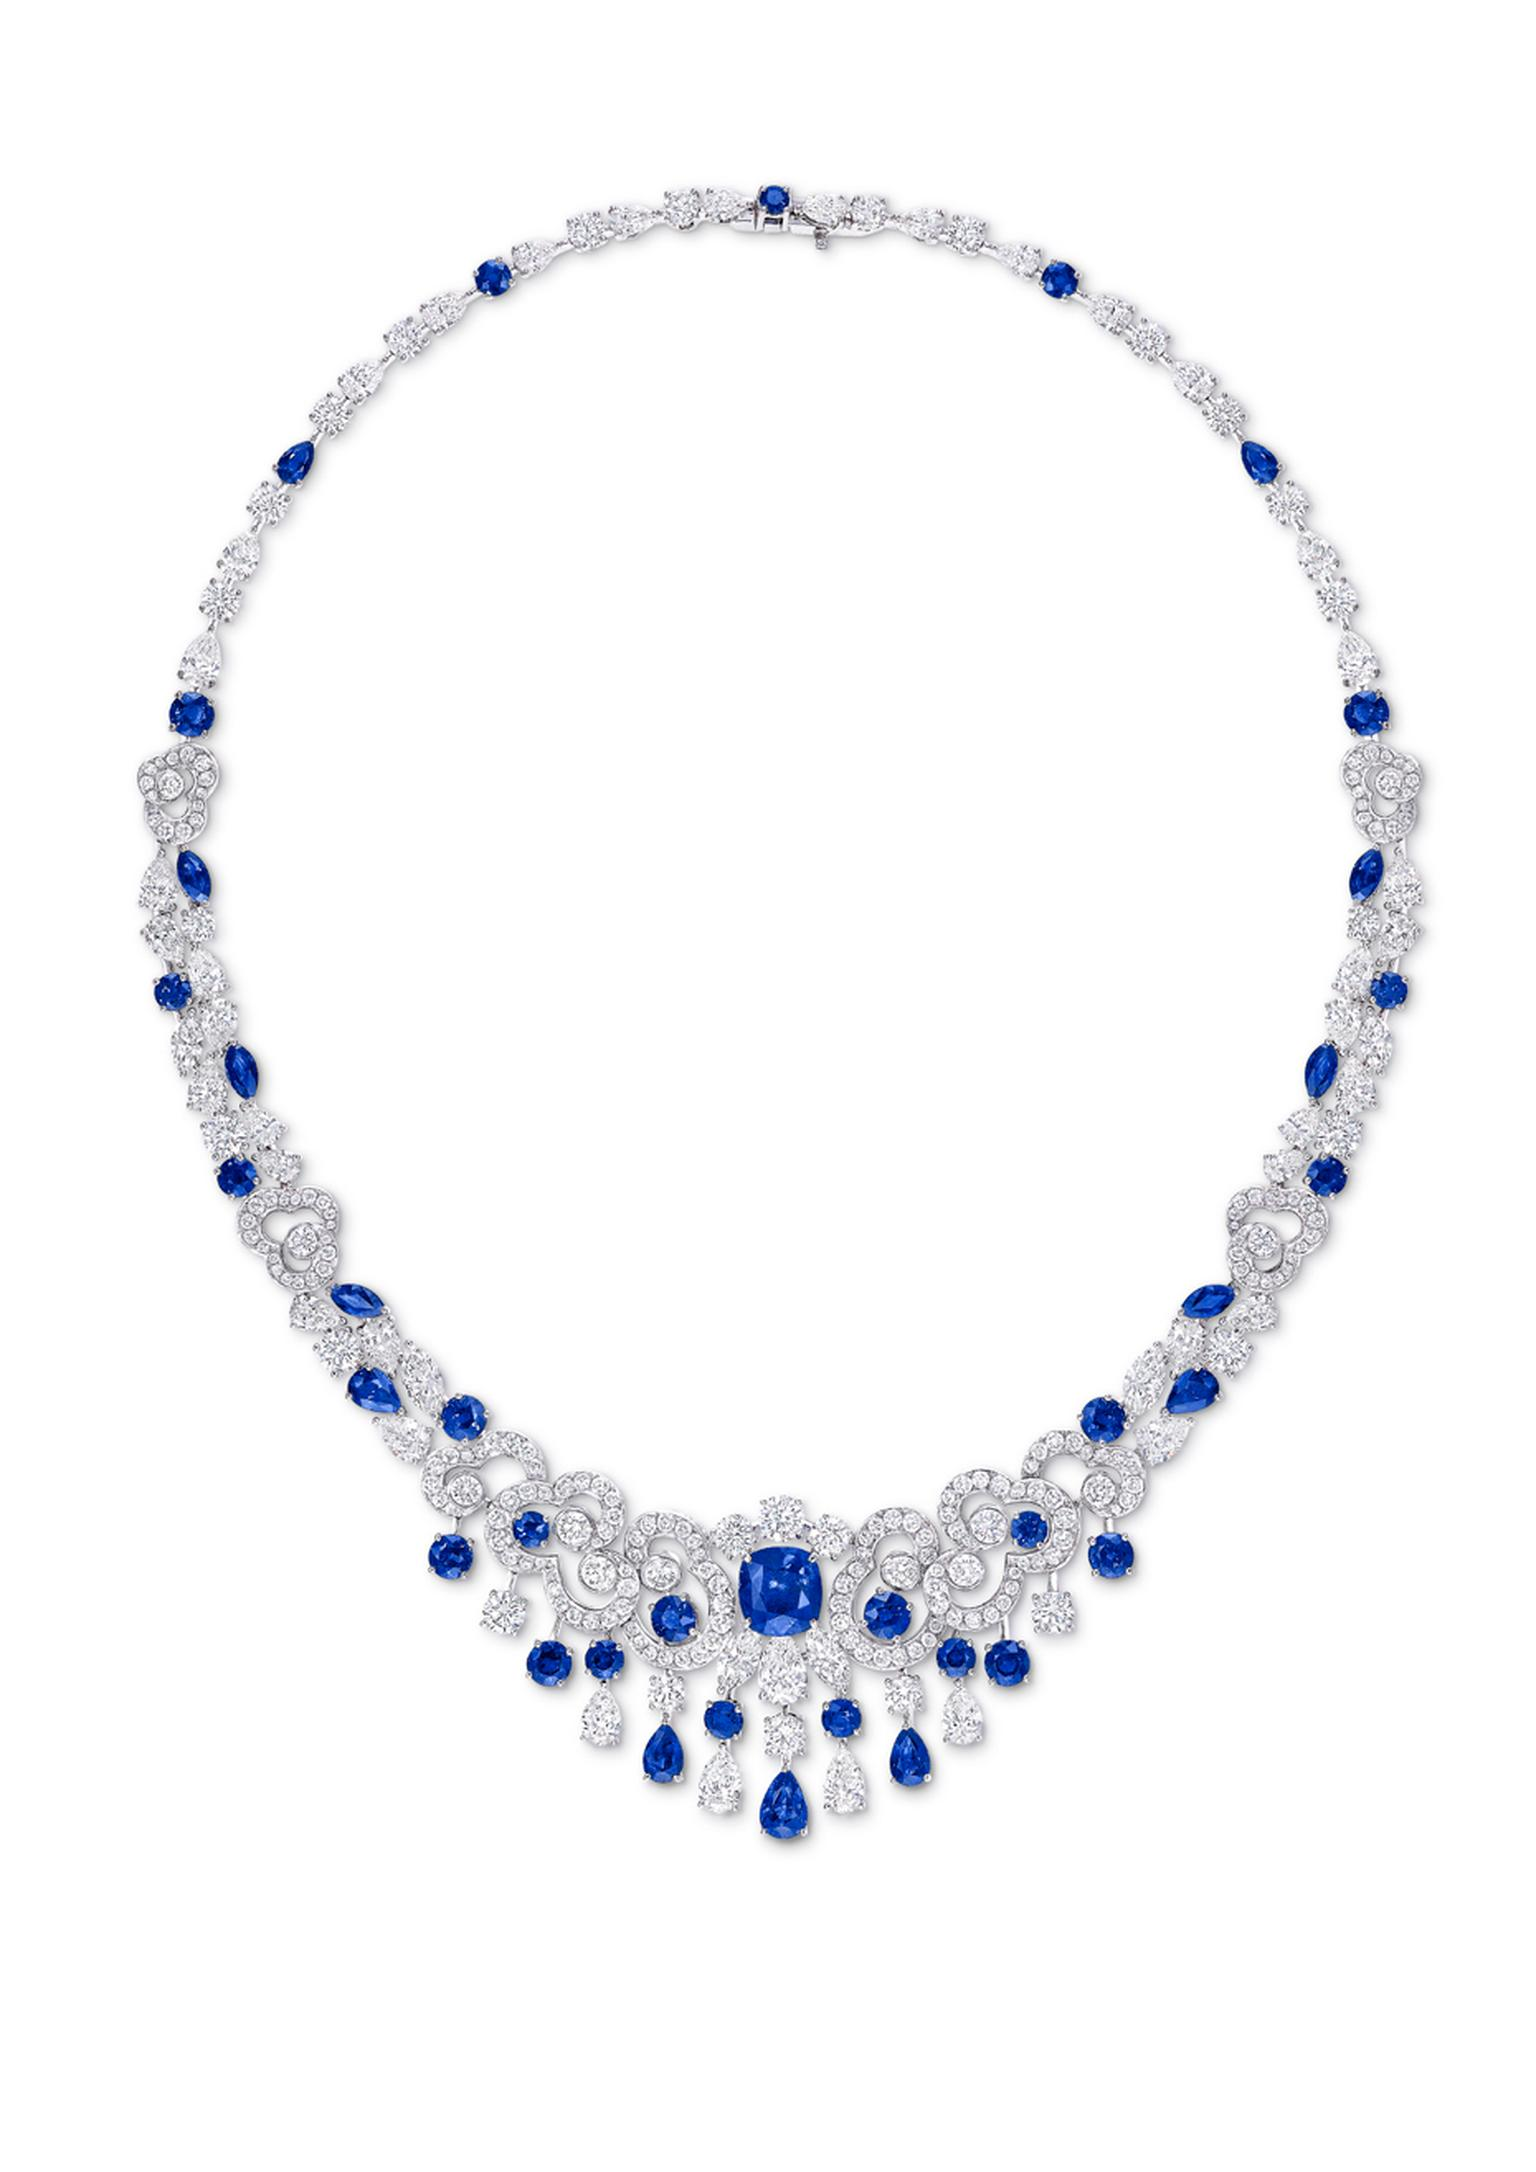 Graff's sapphire and diamond Nuage necklace captures the buoyancy and lightness of clouds in pavé diamonds scattered with bursting sapphire blooms.